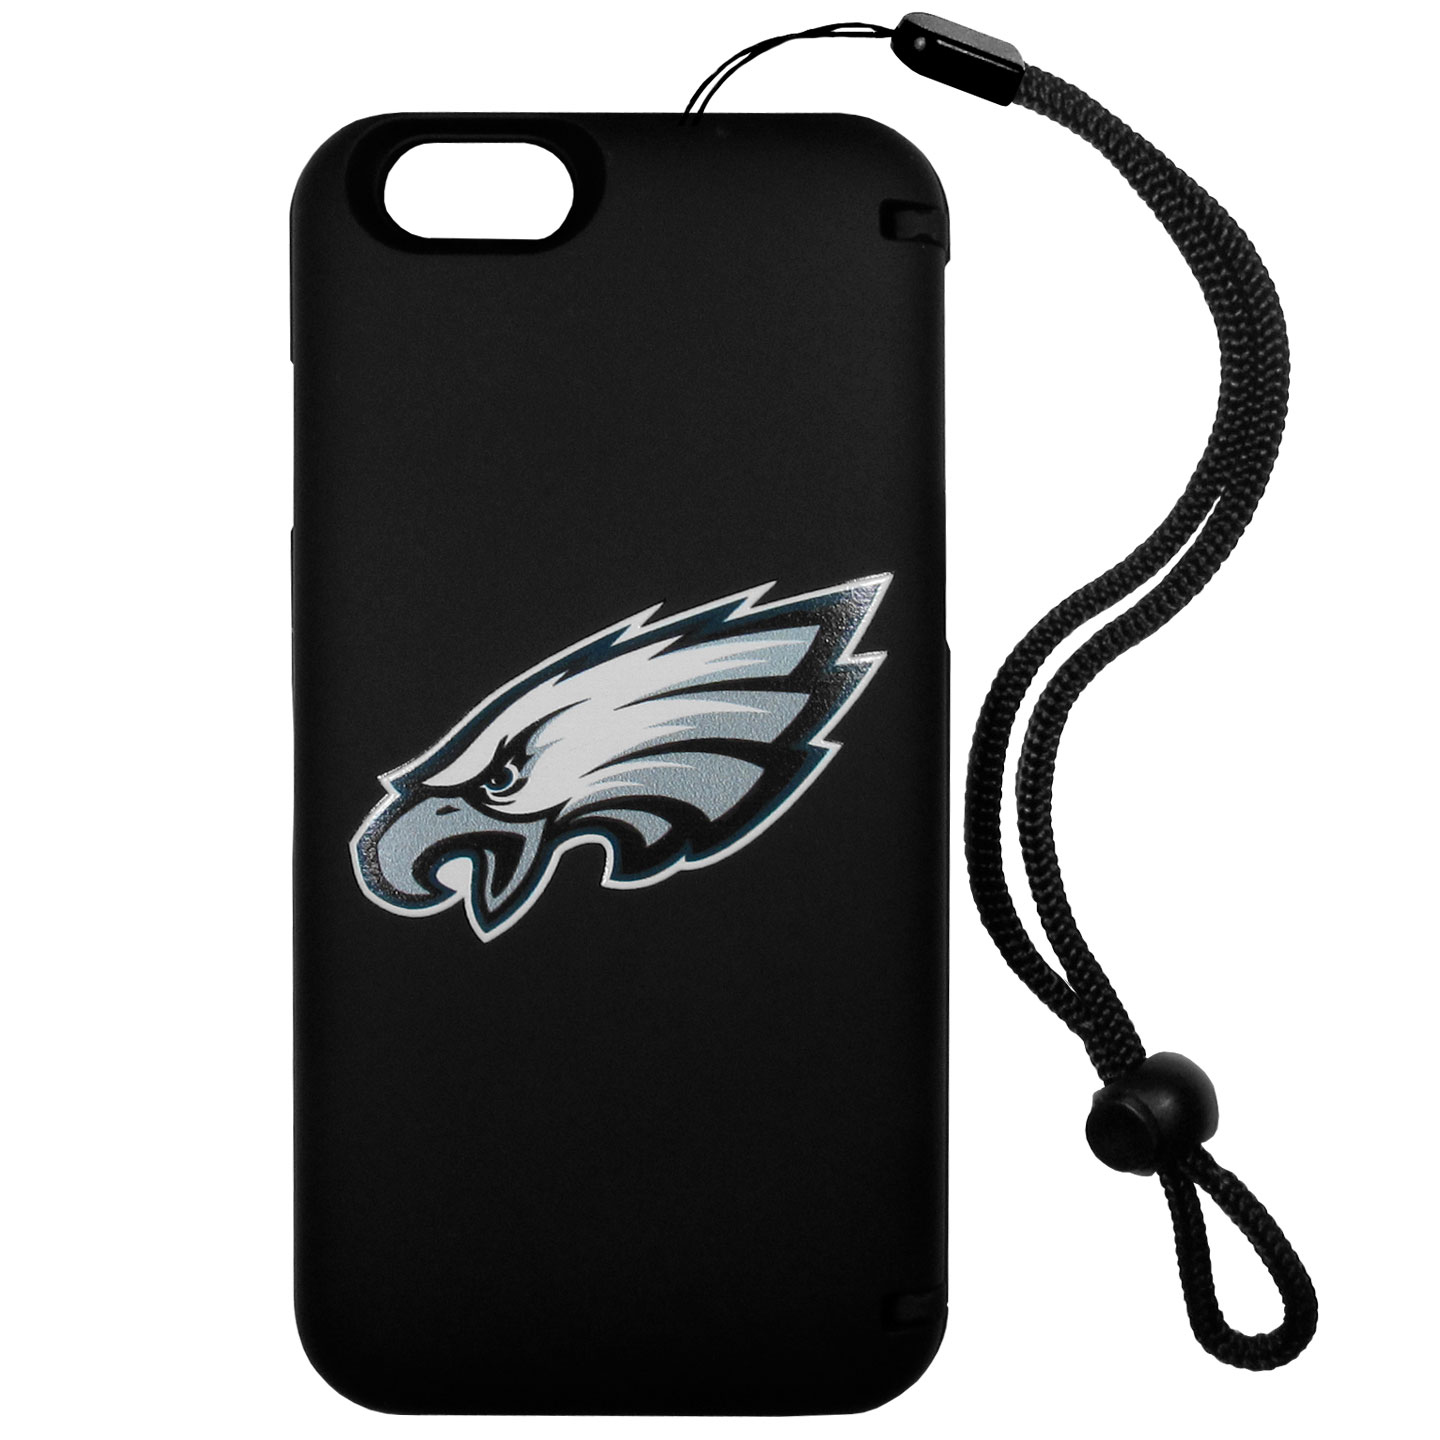 Philadelphia Eagles iPhone 6 Everything Case - This case really does have everything but the kitchen sink! The hidden compartment lets you keep your cards, money and tickets to the big game safe and secure and has a compact mirror so you can make sure your game face is ready to go. It also comes with a kickstand to make chatting and watching videos a breeze. The wrist strap allows you to travel with ease with your everything case. If that's not enough, it also comes with the Philadelphia Eagles logo printed in expert detail on the front.